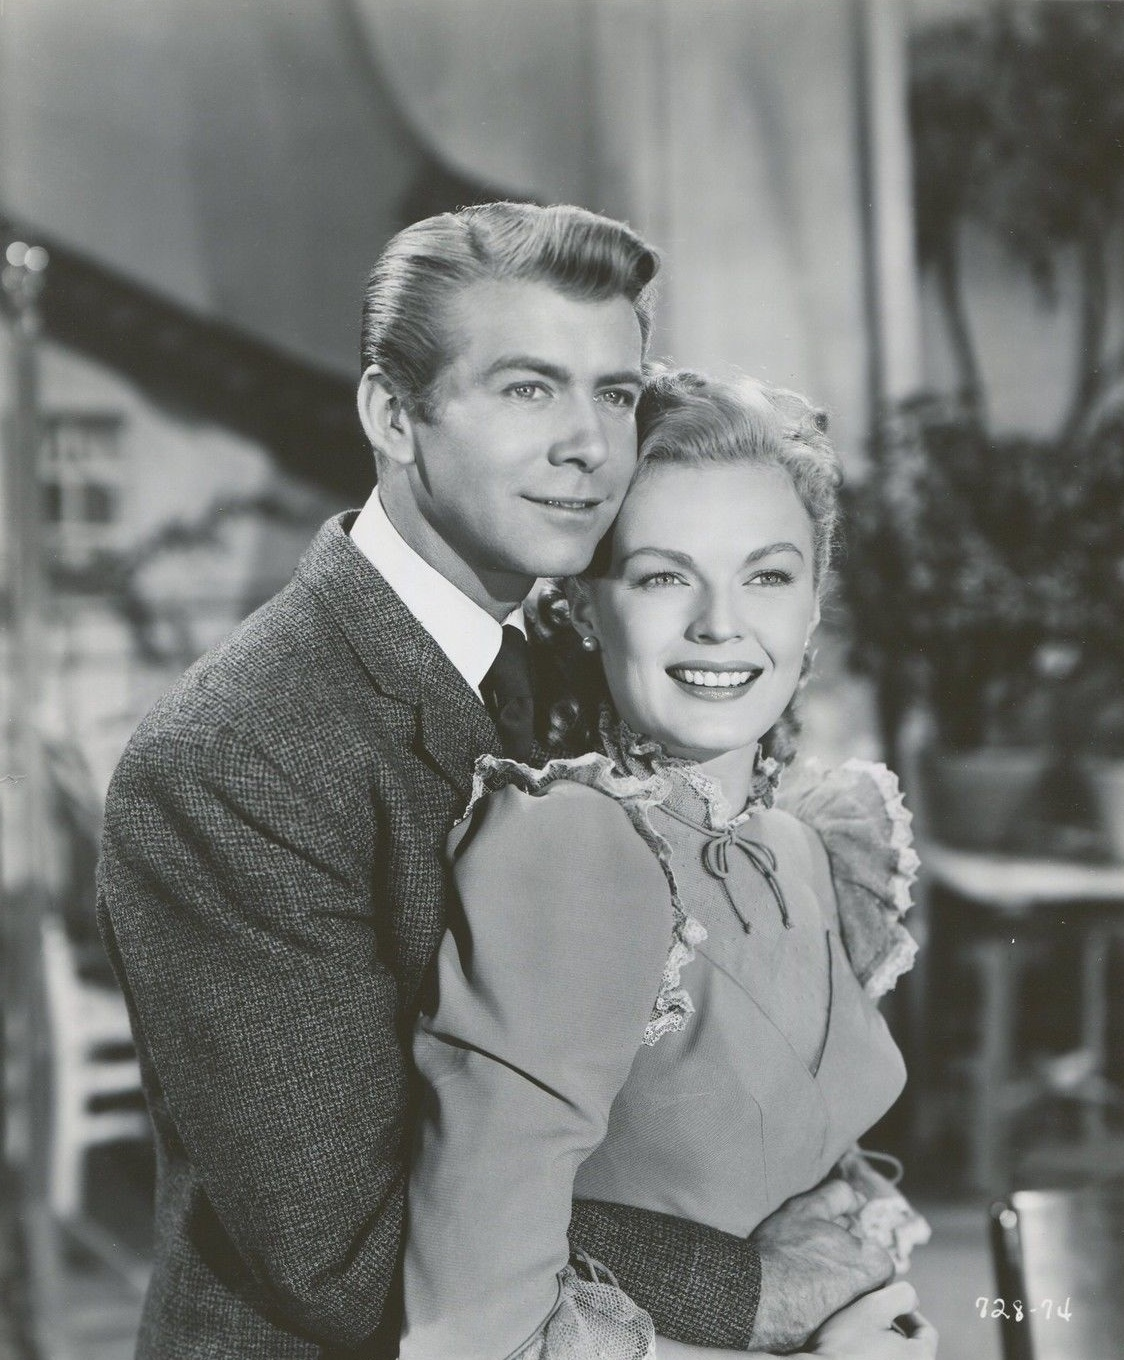 June Haver and Gene Nelson in The Daughter of Rosie O'Grady (1950)